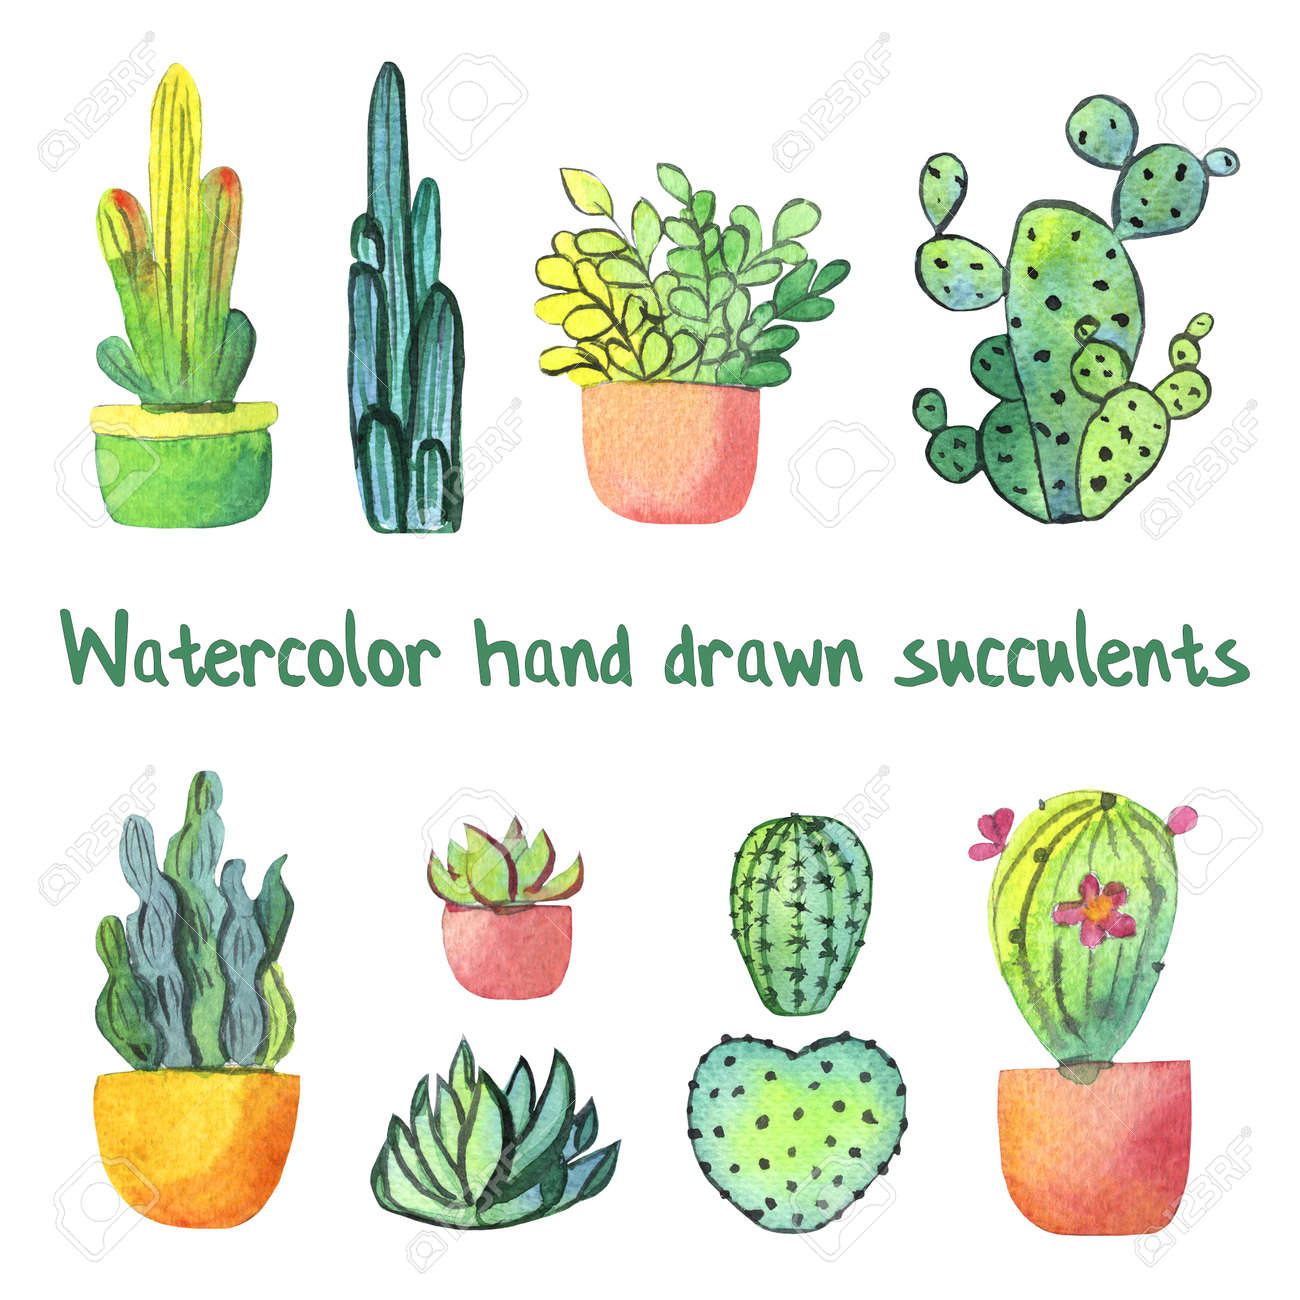 Watercolor Hand Drawn Cactus And Succulent In Pot Set Isolated Stock Photo Picture And Royalty Free Image Image 96690117